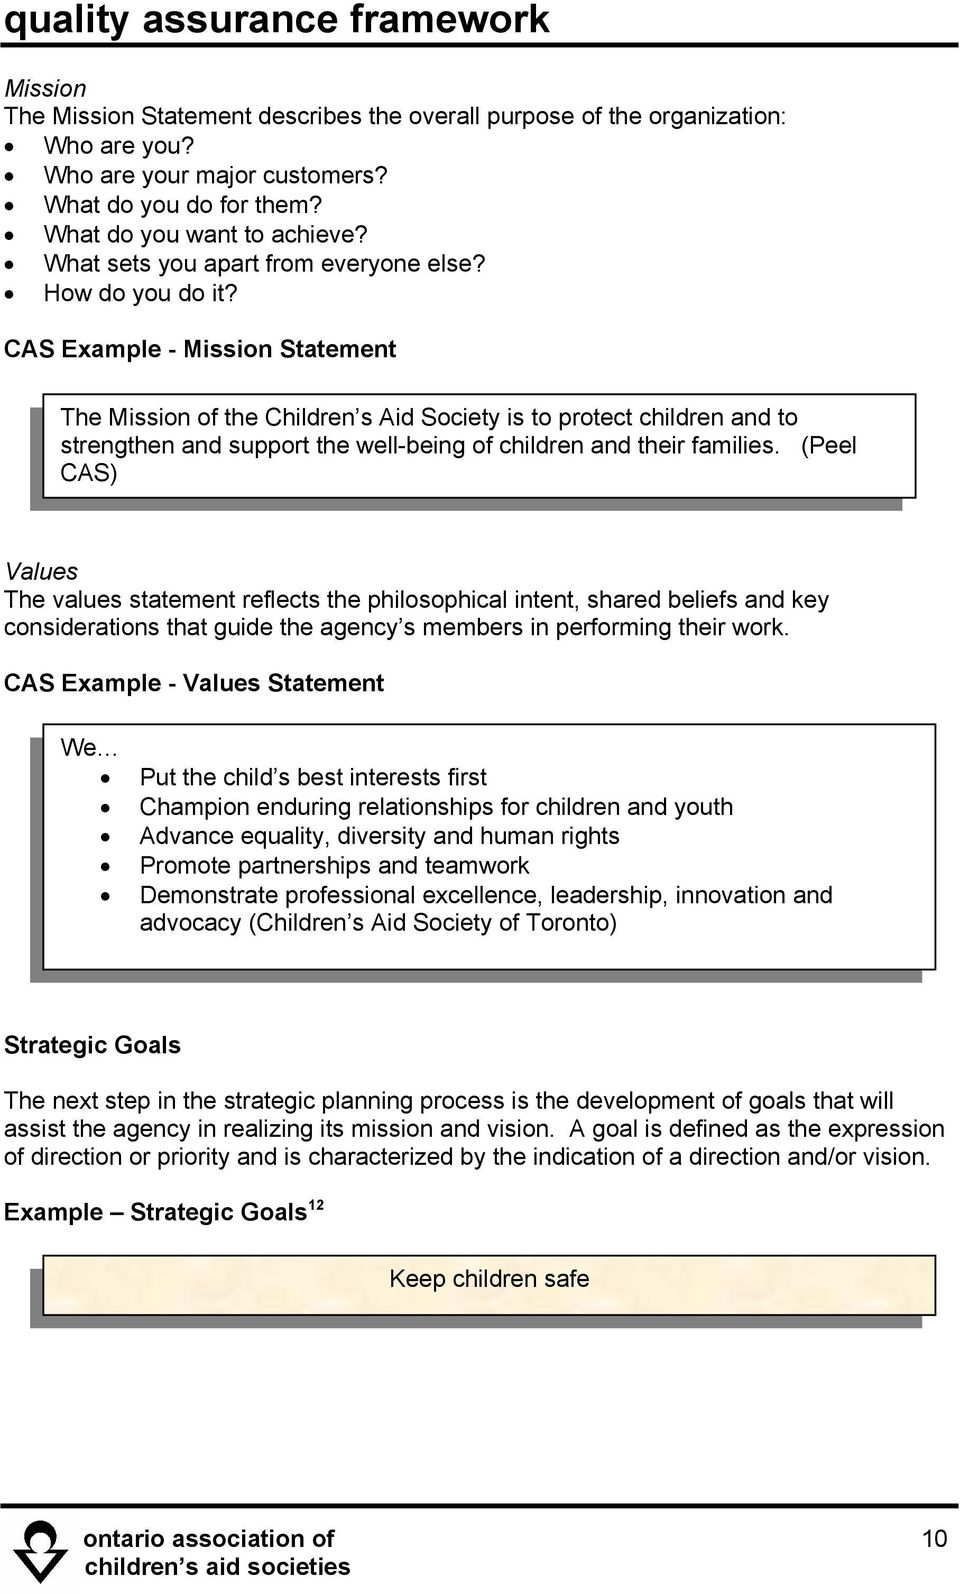 CAS Example - Mission Statement The Mission of the Children s Aid Society is to protect children and to strengthen and support the well-being of children and their families.